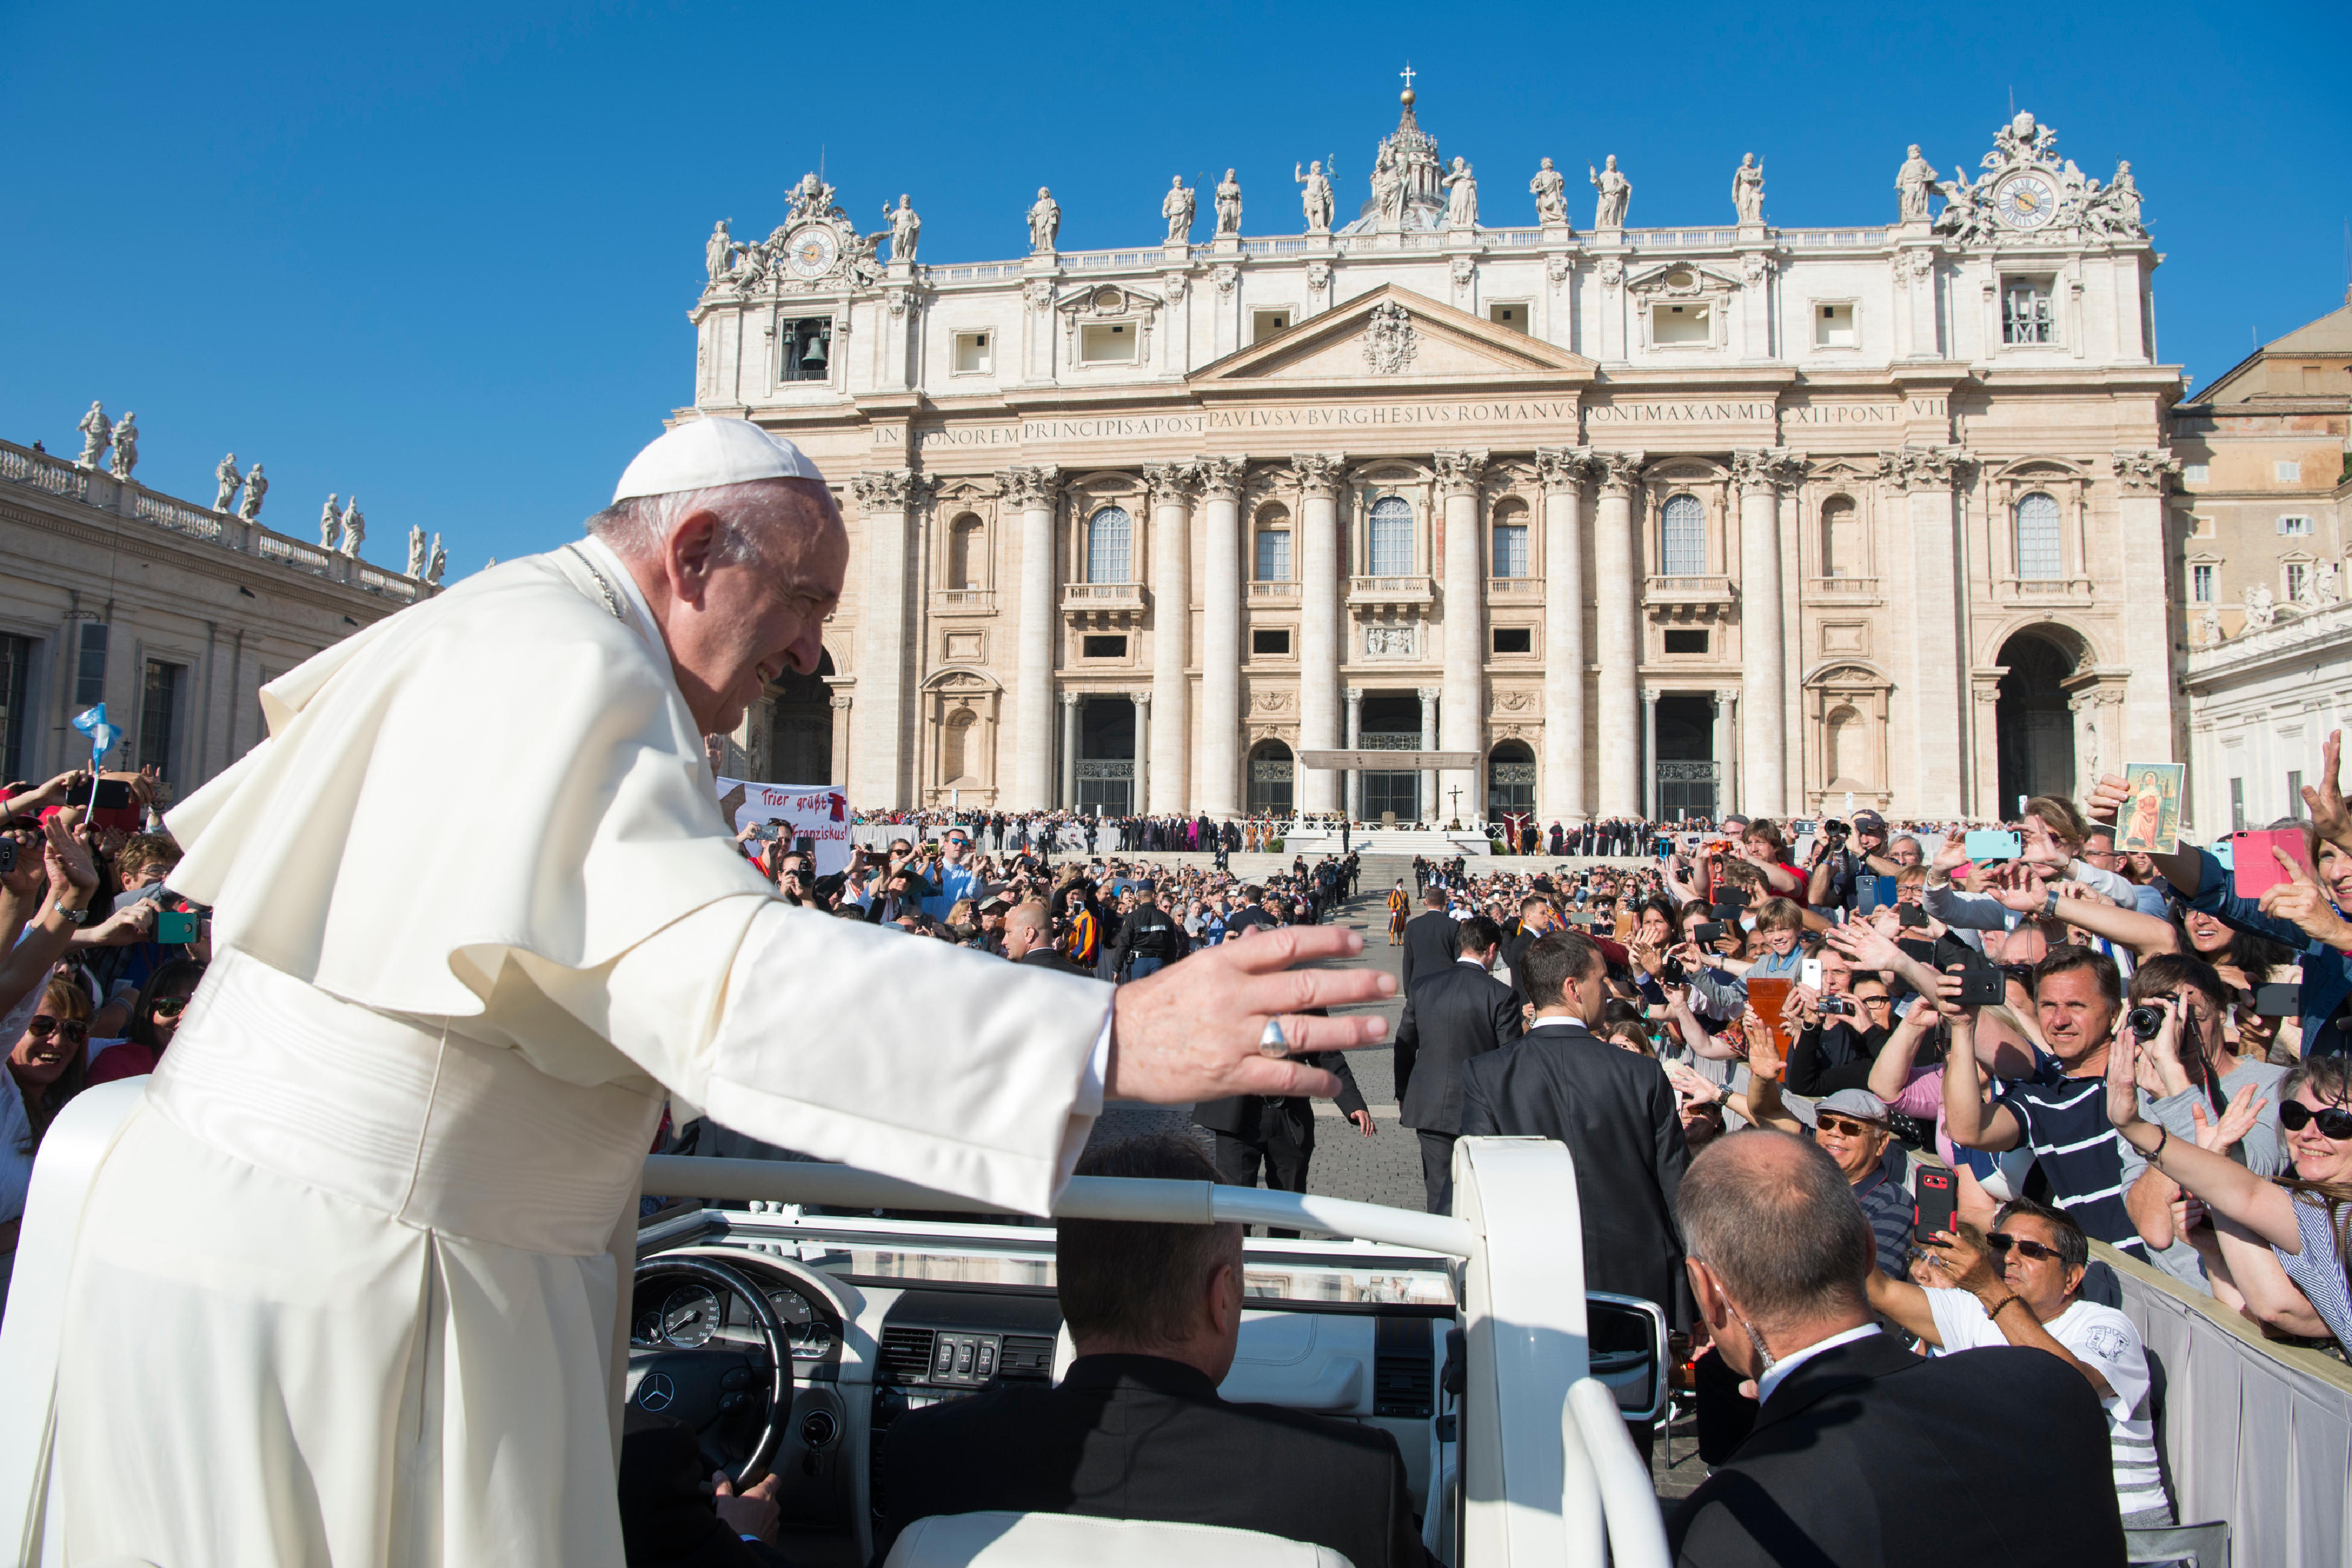 Pope Francis waves from his pope-mobile as he is driven through the crowd ahead of his weekly general audience, in St. Peter's Square, at the Vatican, Wednesday, Oct. 4, 2017.  (L'Osservatore Romano/Pool Photo via AP)